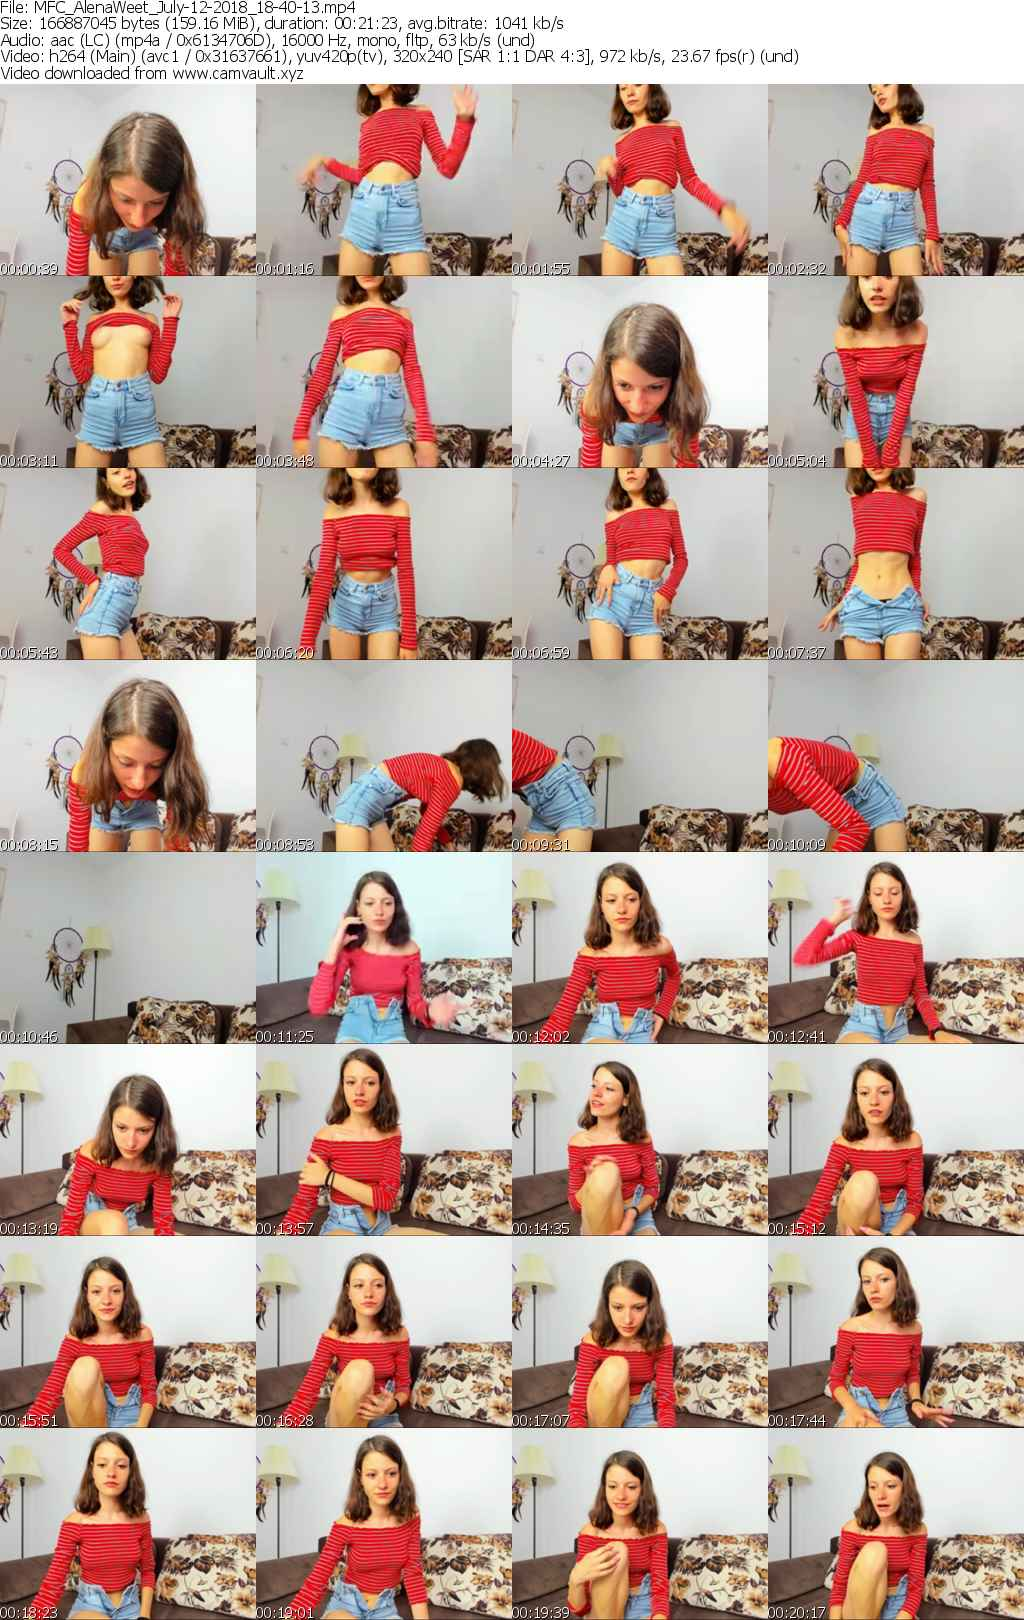 Video preview for model AlenaWeet